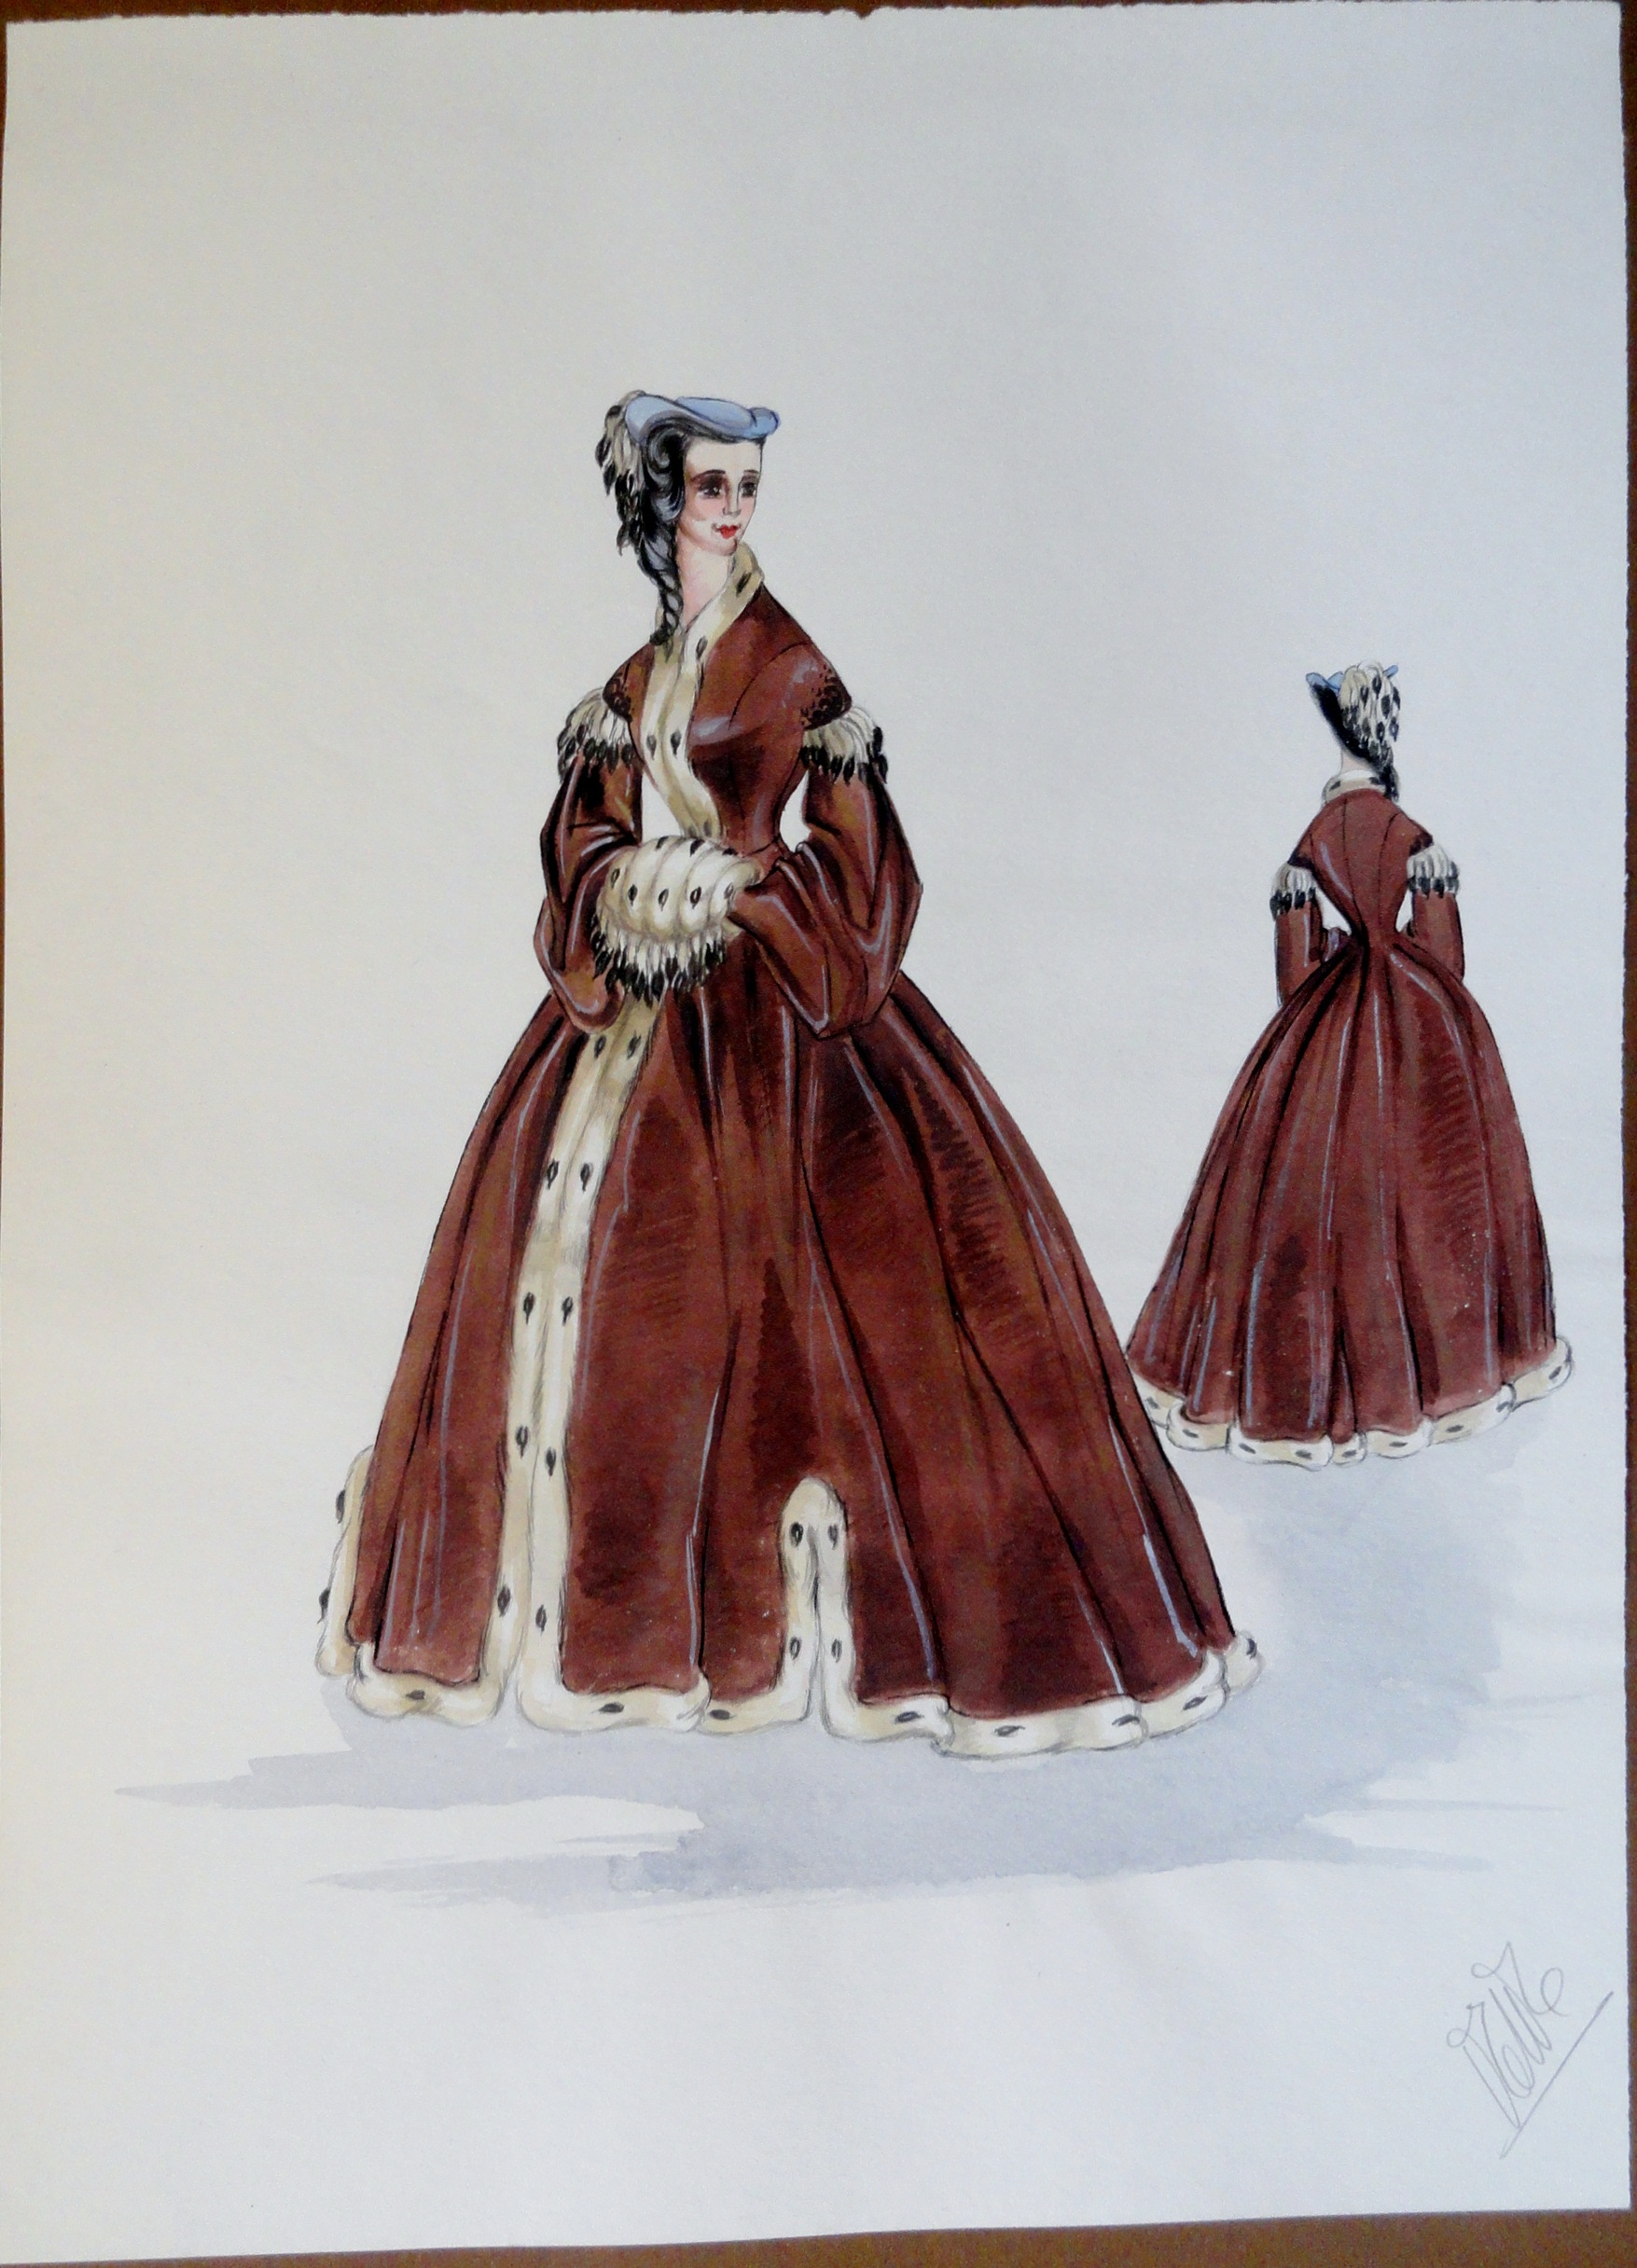 Rachel in long fur stole dress and bonnet. Pen and ink and gouache. Signed.  From the Rachel Portfolio by Owen Hyde Clark. $400.00.